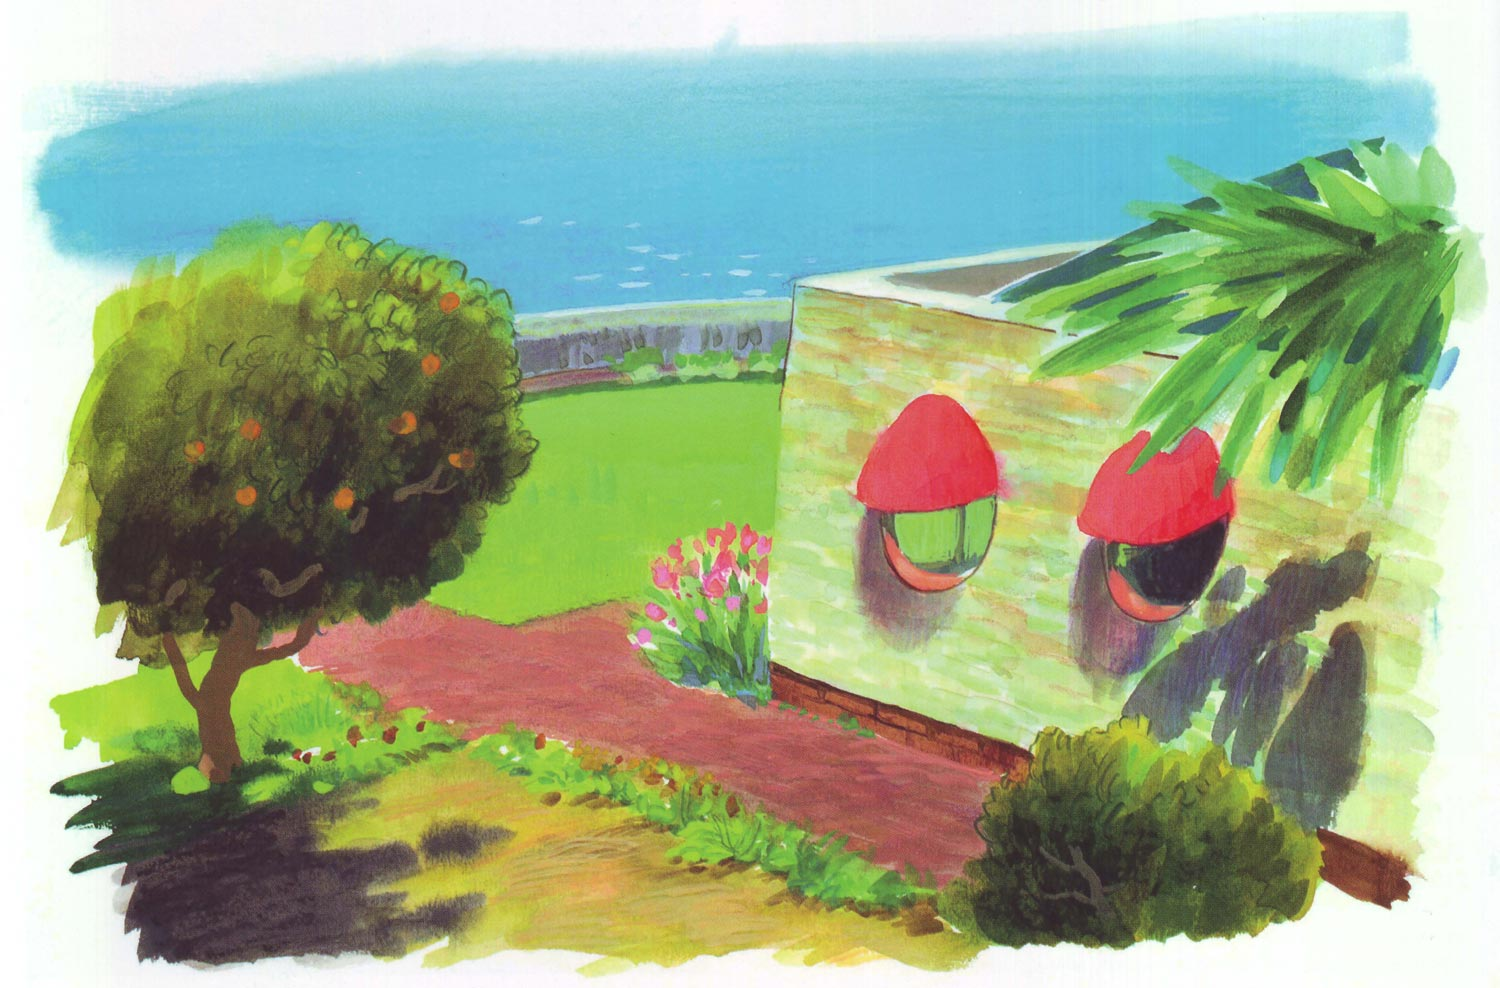 ponyo_on_the_cliff_by_the_sea_background_21.jpg